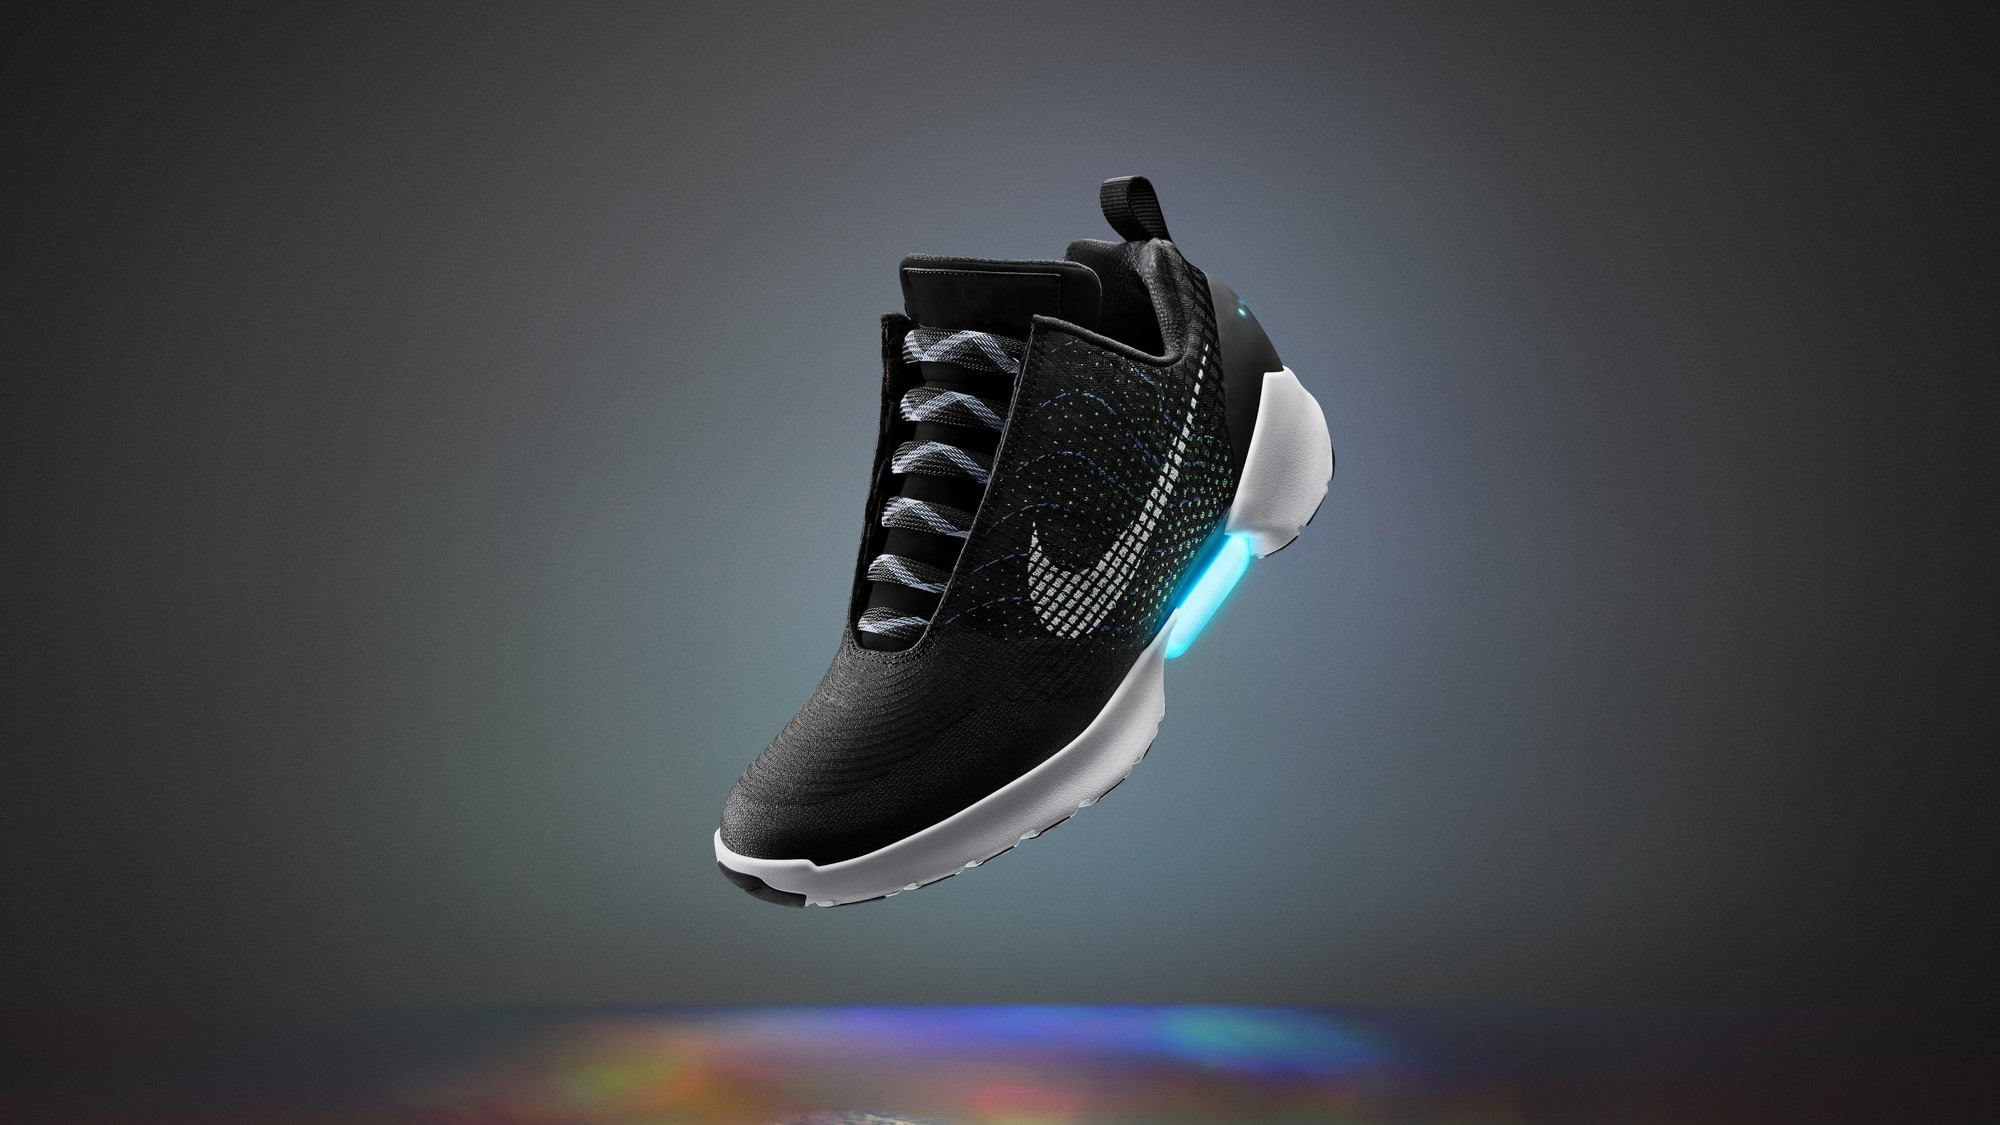 Nike HyperAdapt 1.0 Shoes Feature Mechanized, Auto-lacing Technology -  SolidSmack